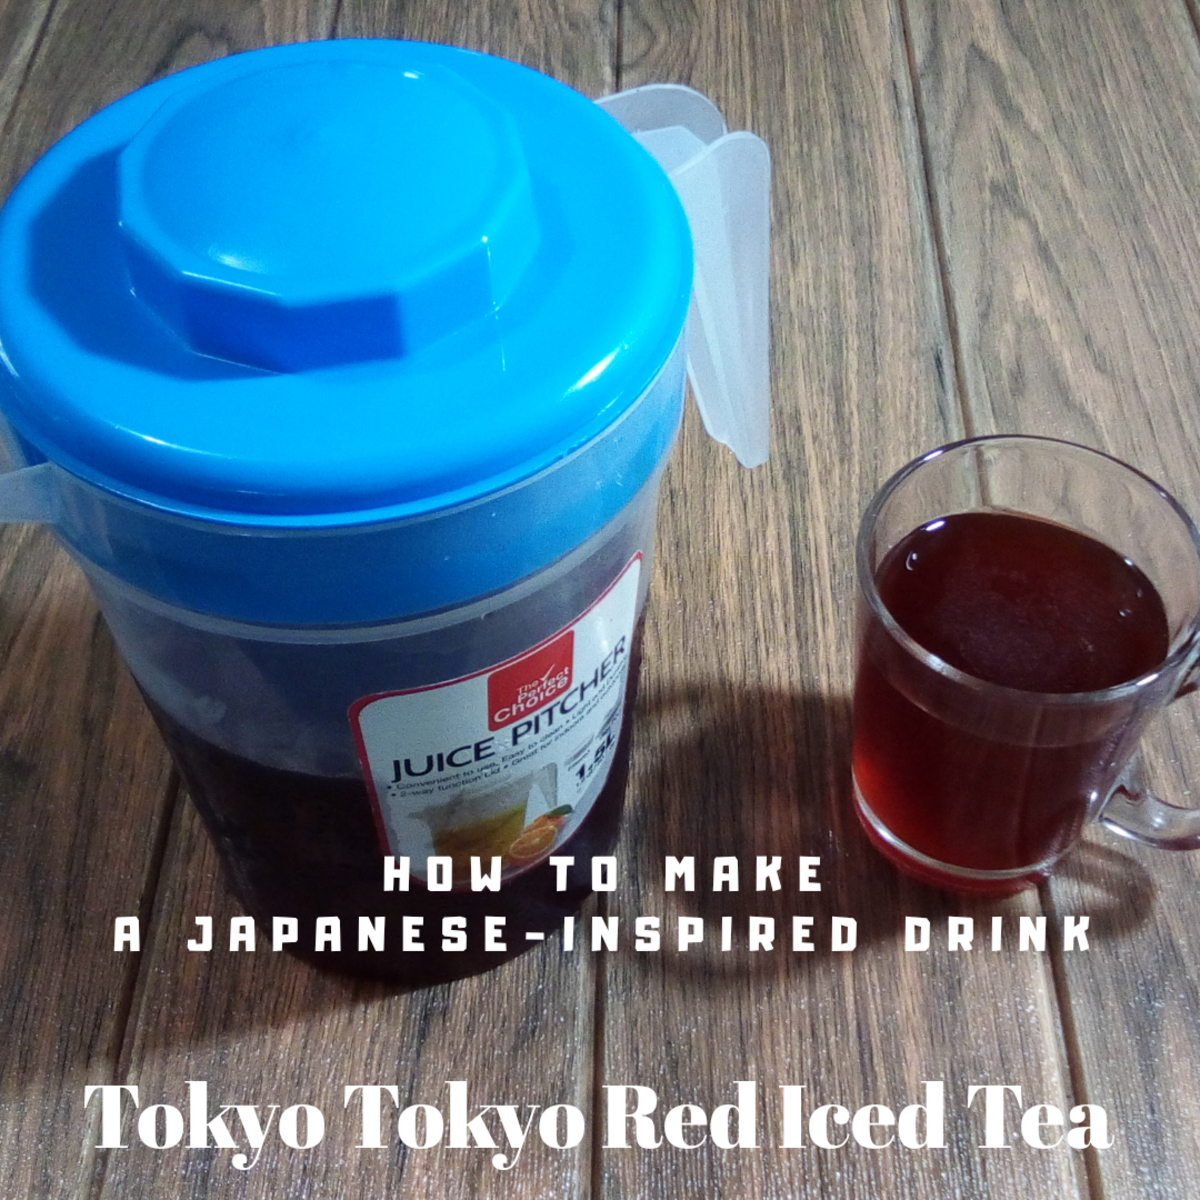 How to Make Tokyo Tokyo Red Iced Tea: A Japanese-Inspired Drink